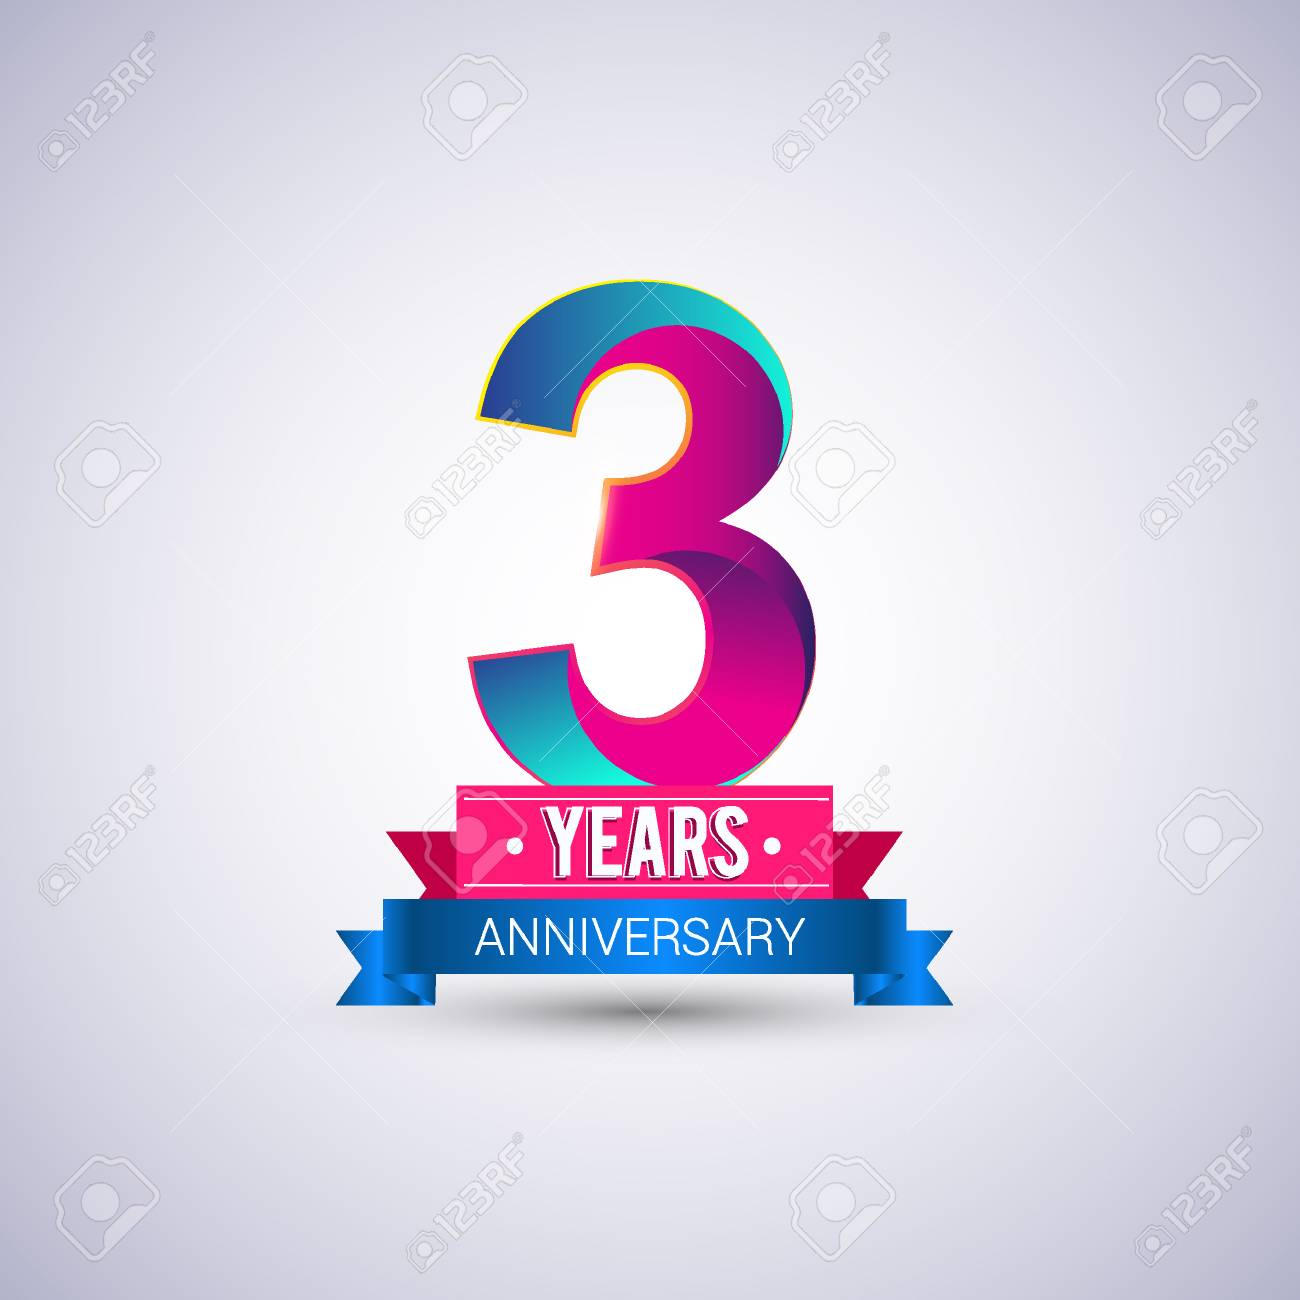 3 years anniversary logo blue and red colored vector design royalty 3 years anniversary logo blue and red colored vector design stock vector 74493344 altavistaventures Image collections